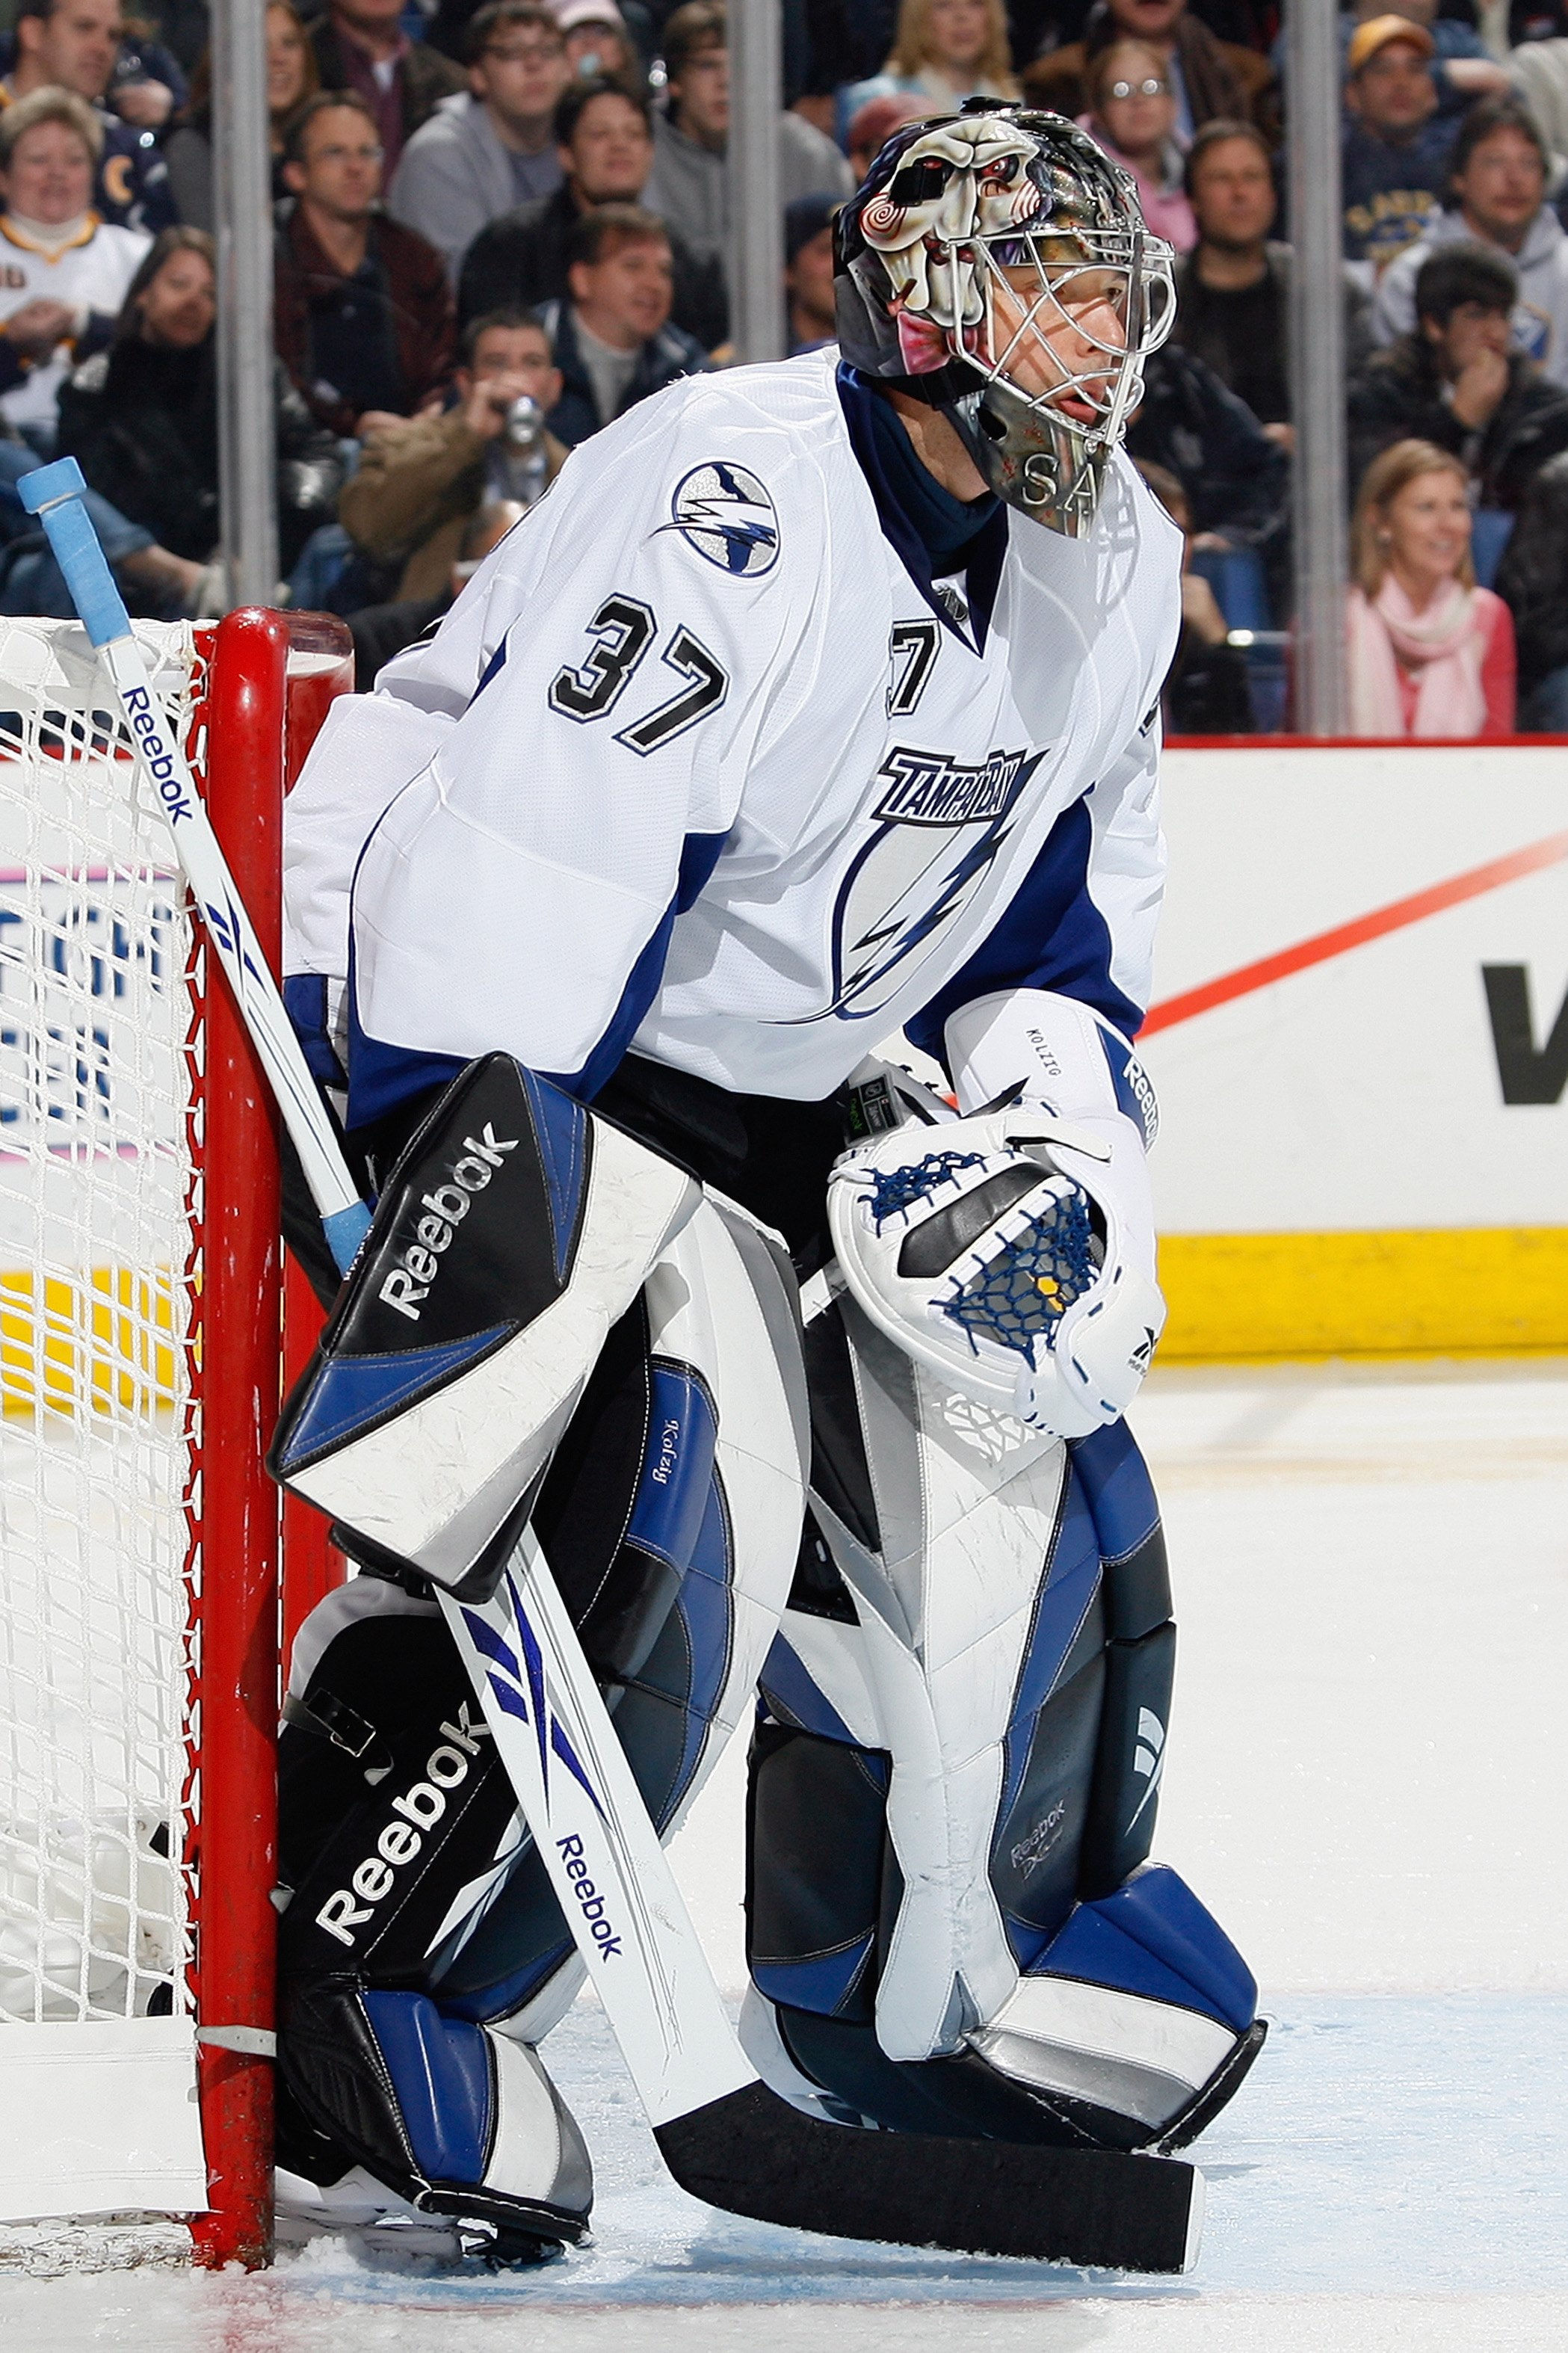 BUFFALO, NY - OCTOBER 30:  Olaf Kolzig #37 of the Tampa Bay Lightning defends the net during the game against the Buffalo Sabres on October 30, 2008 at HSBC Arena in Buffalo, New York. (Photo by Rick Stewart/Getty Images)